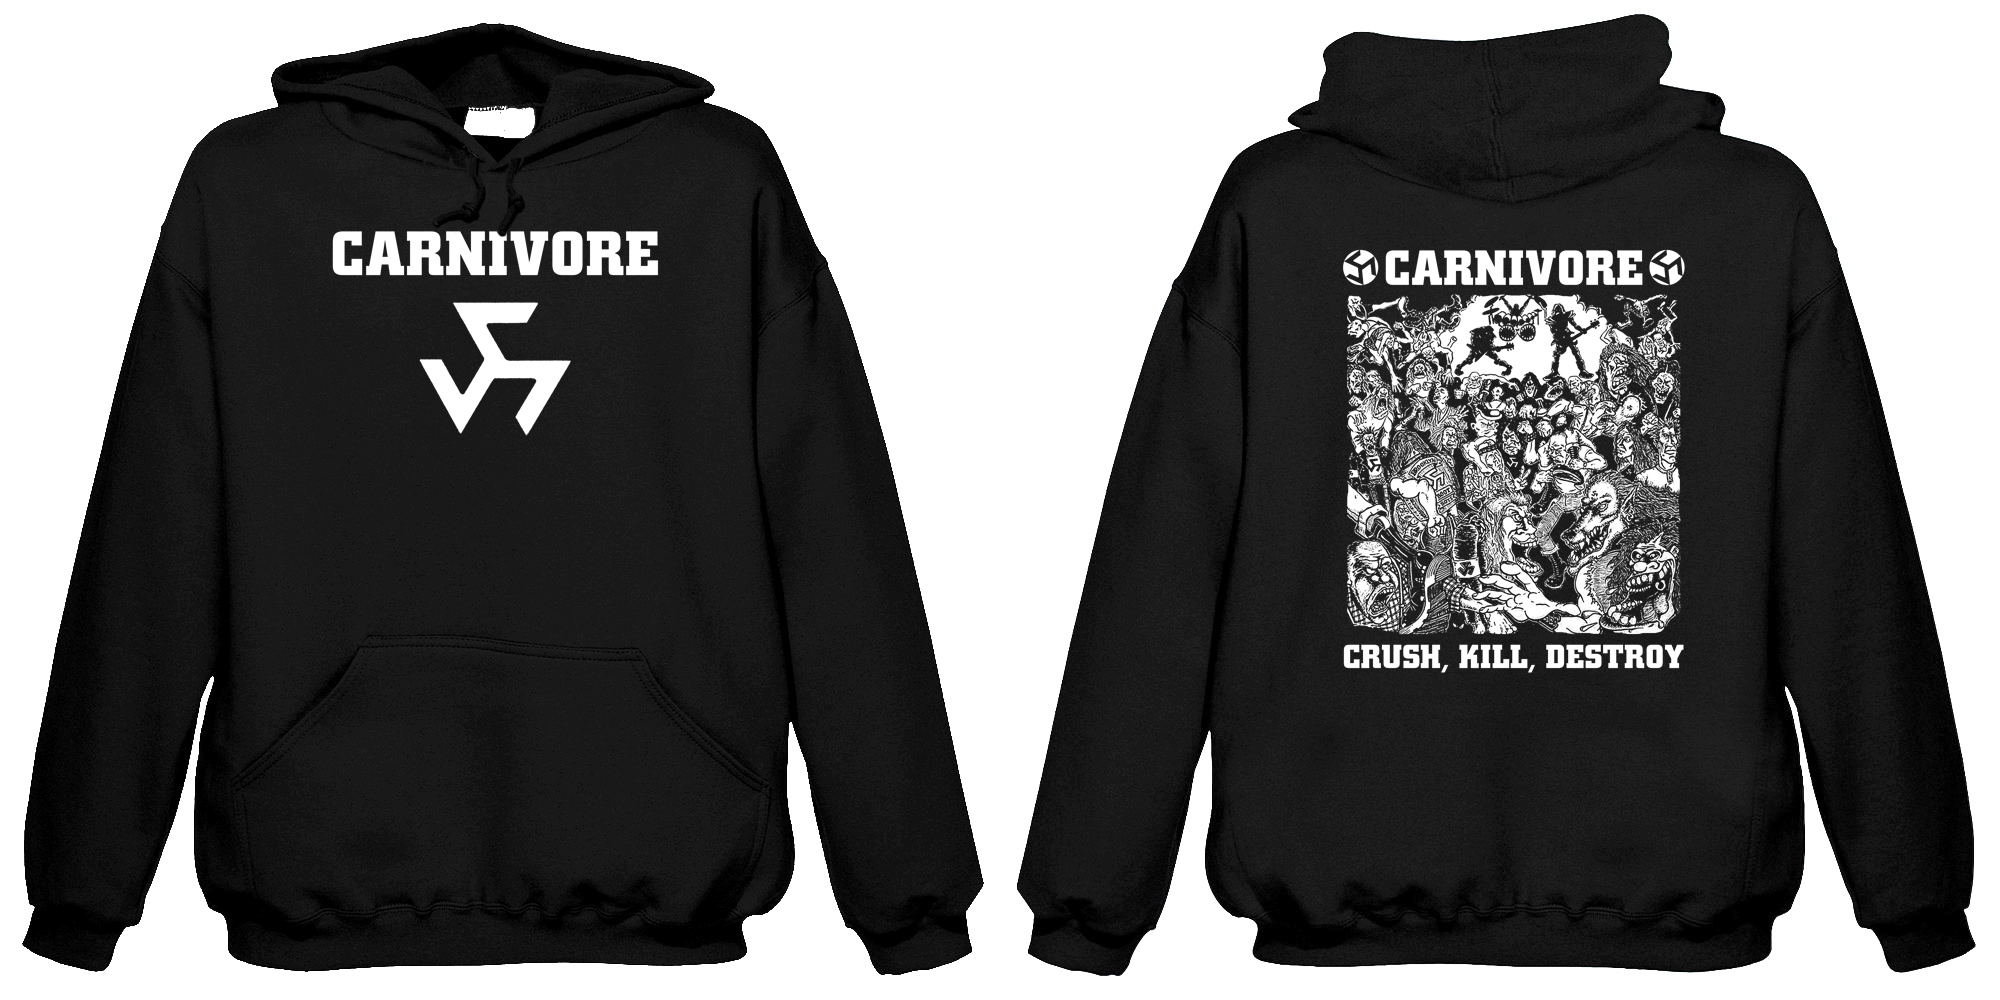 Carnivore - Crush , Kill , Destroy  (Hooded Sweatshirt)